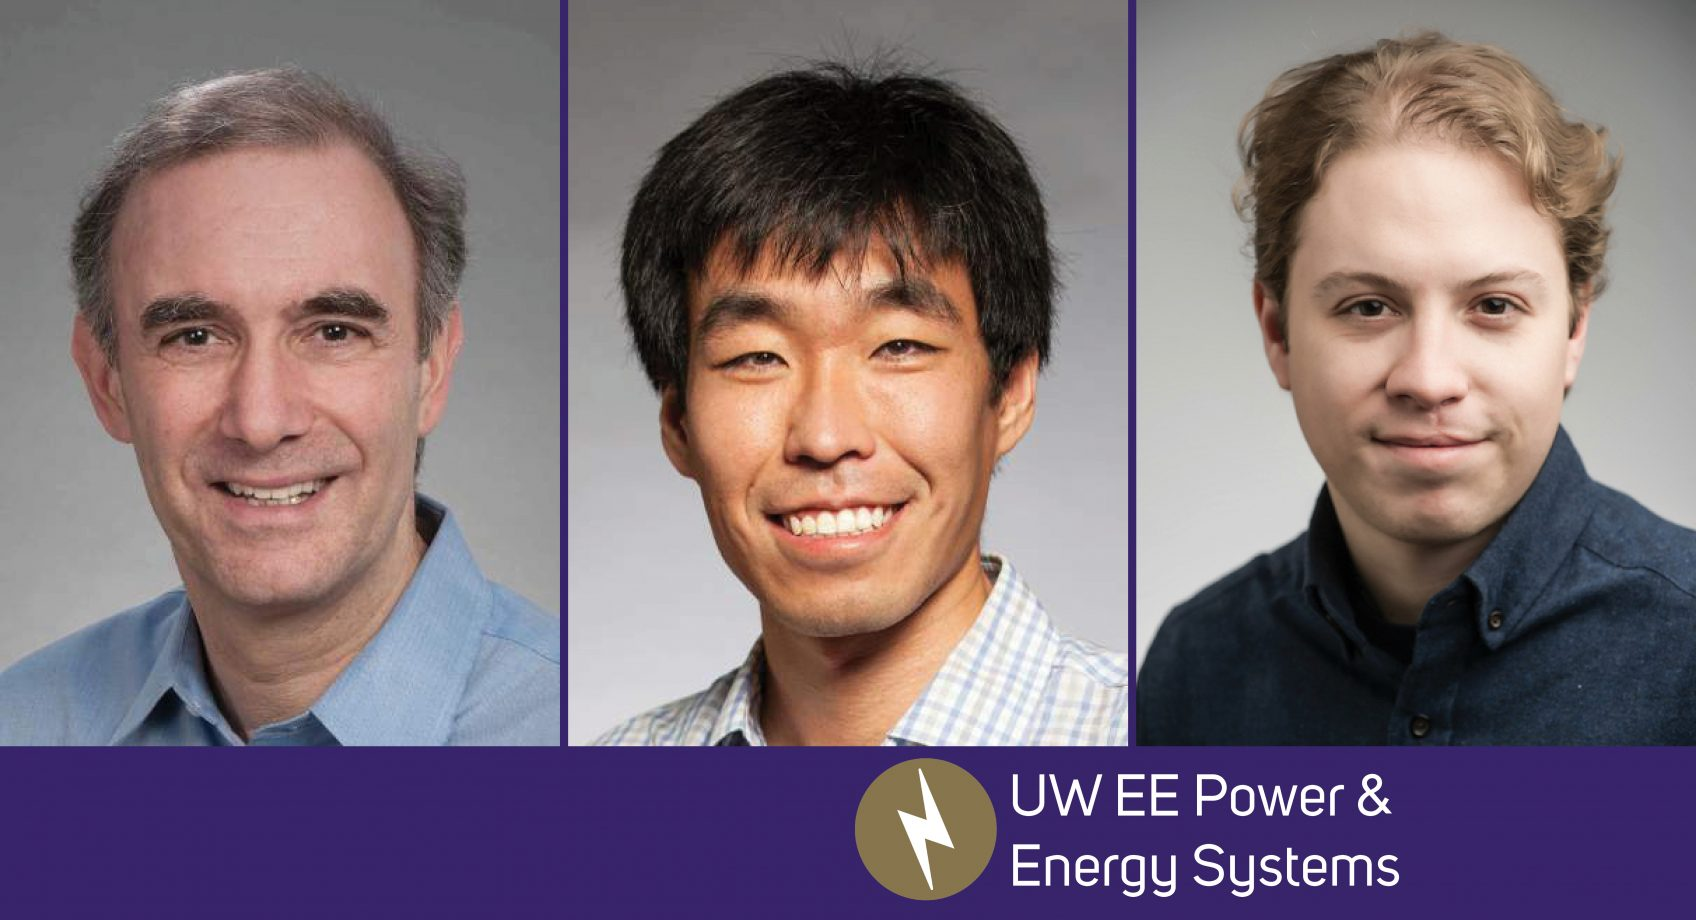 UW, Tsinghua researchers explore challenges and opportunities for smart, renewable energy grids Banner